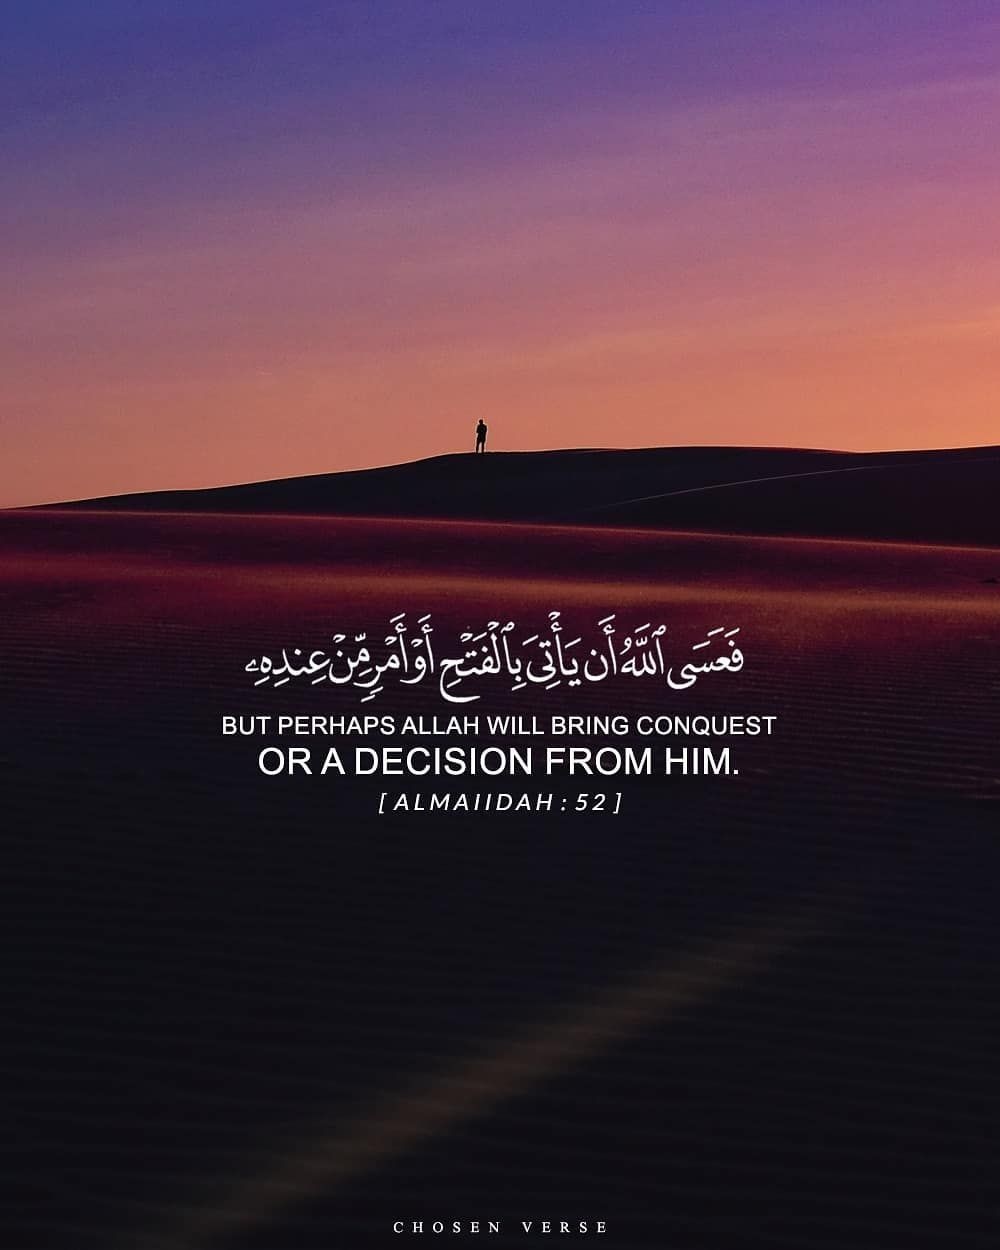 Chosen Verse On Instagram Islamic Quotes Quran Muslim Muslimah قران ايات اذكار اسلاميات Quran Verses Islamic Quotes Quran Learn English